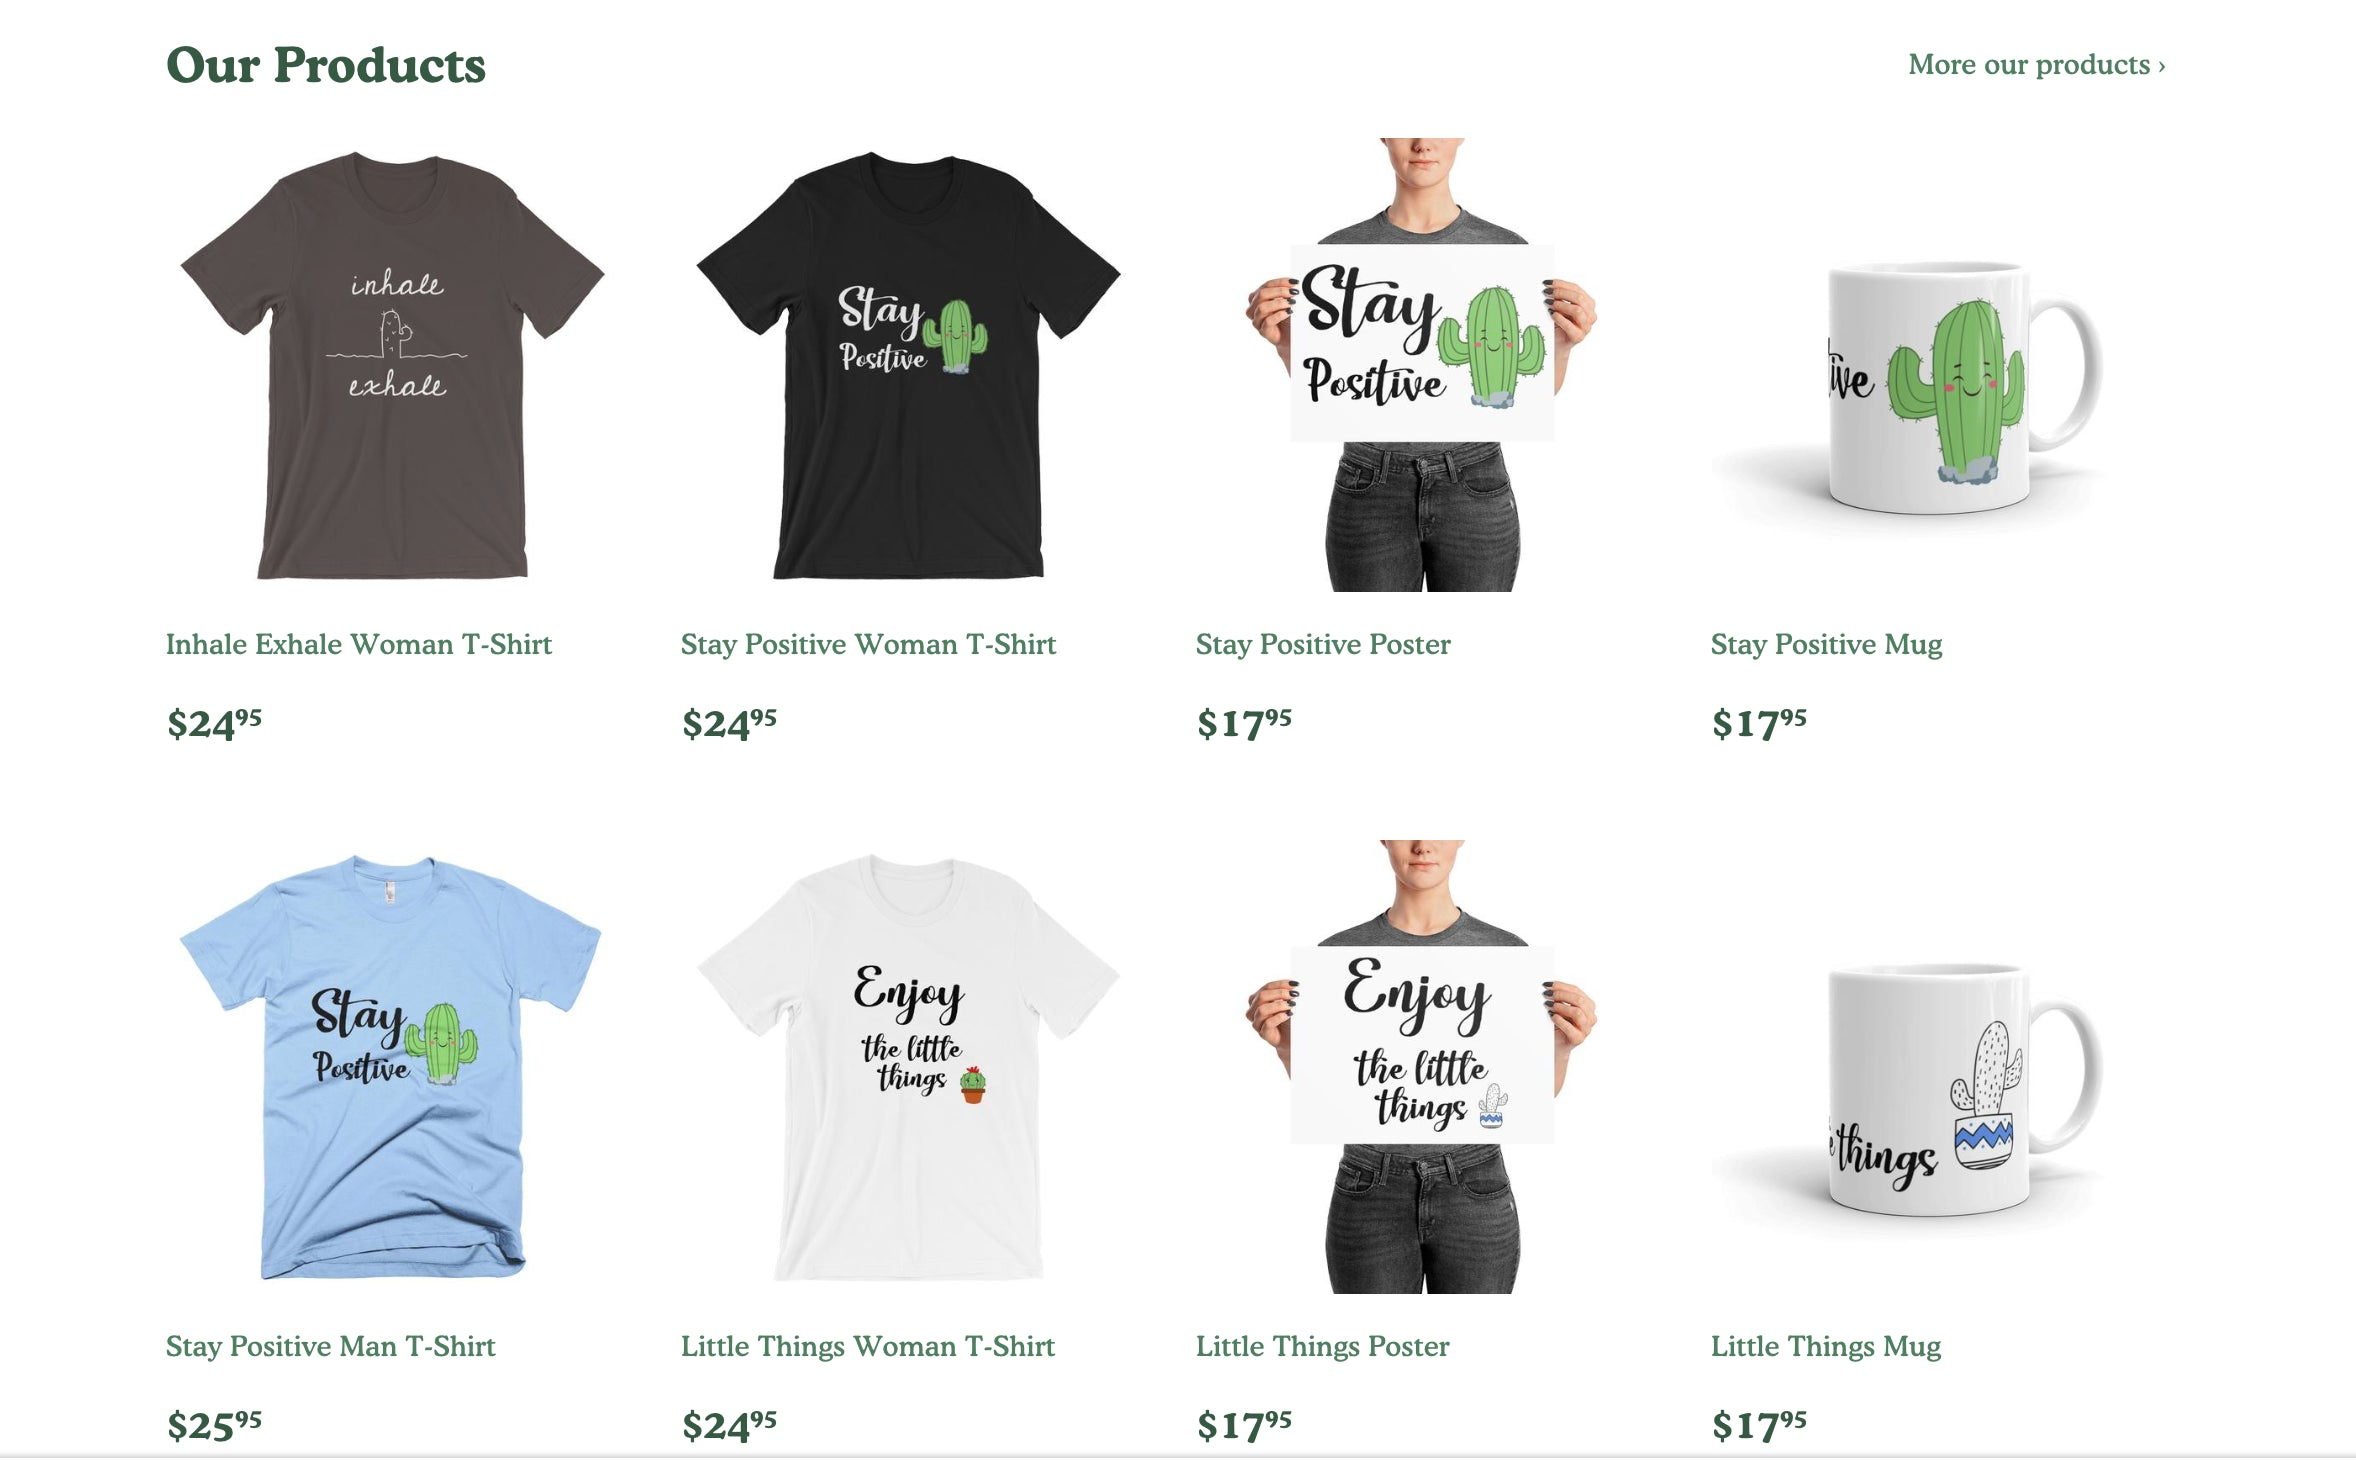 ThePositiveCactus Printing On Demand Shopify Store with Tremendous Growth Opportunity Screenshot - 3